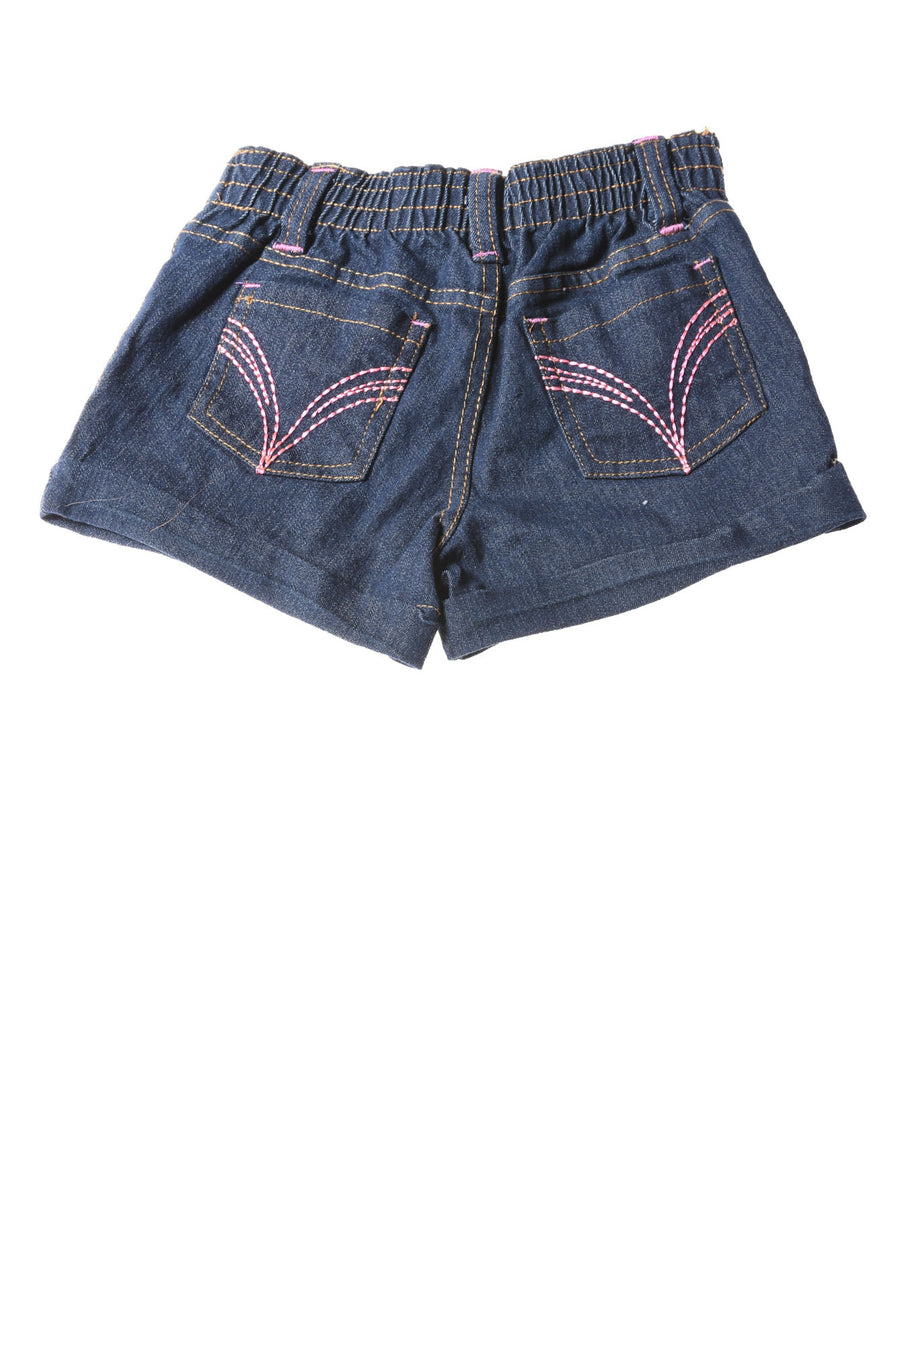 Toddler Girl's Shorts By Limited Too